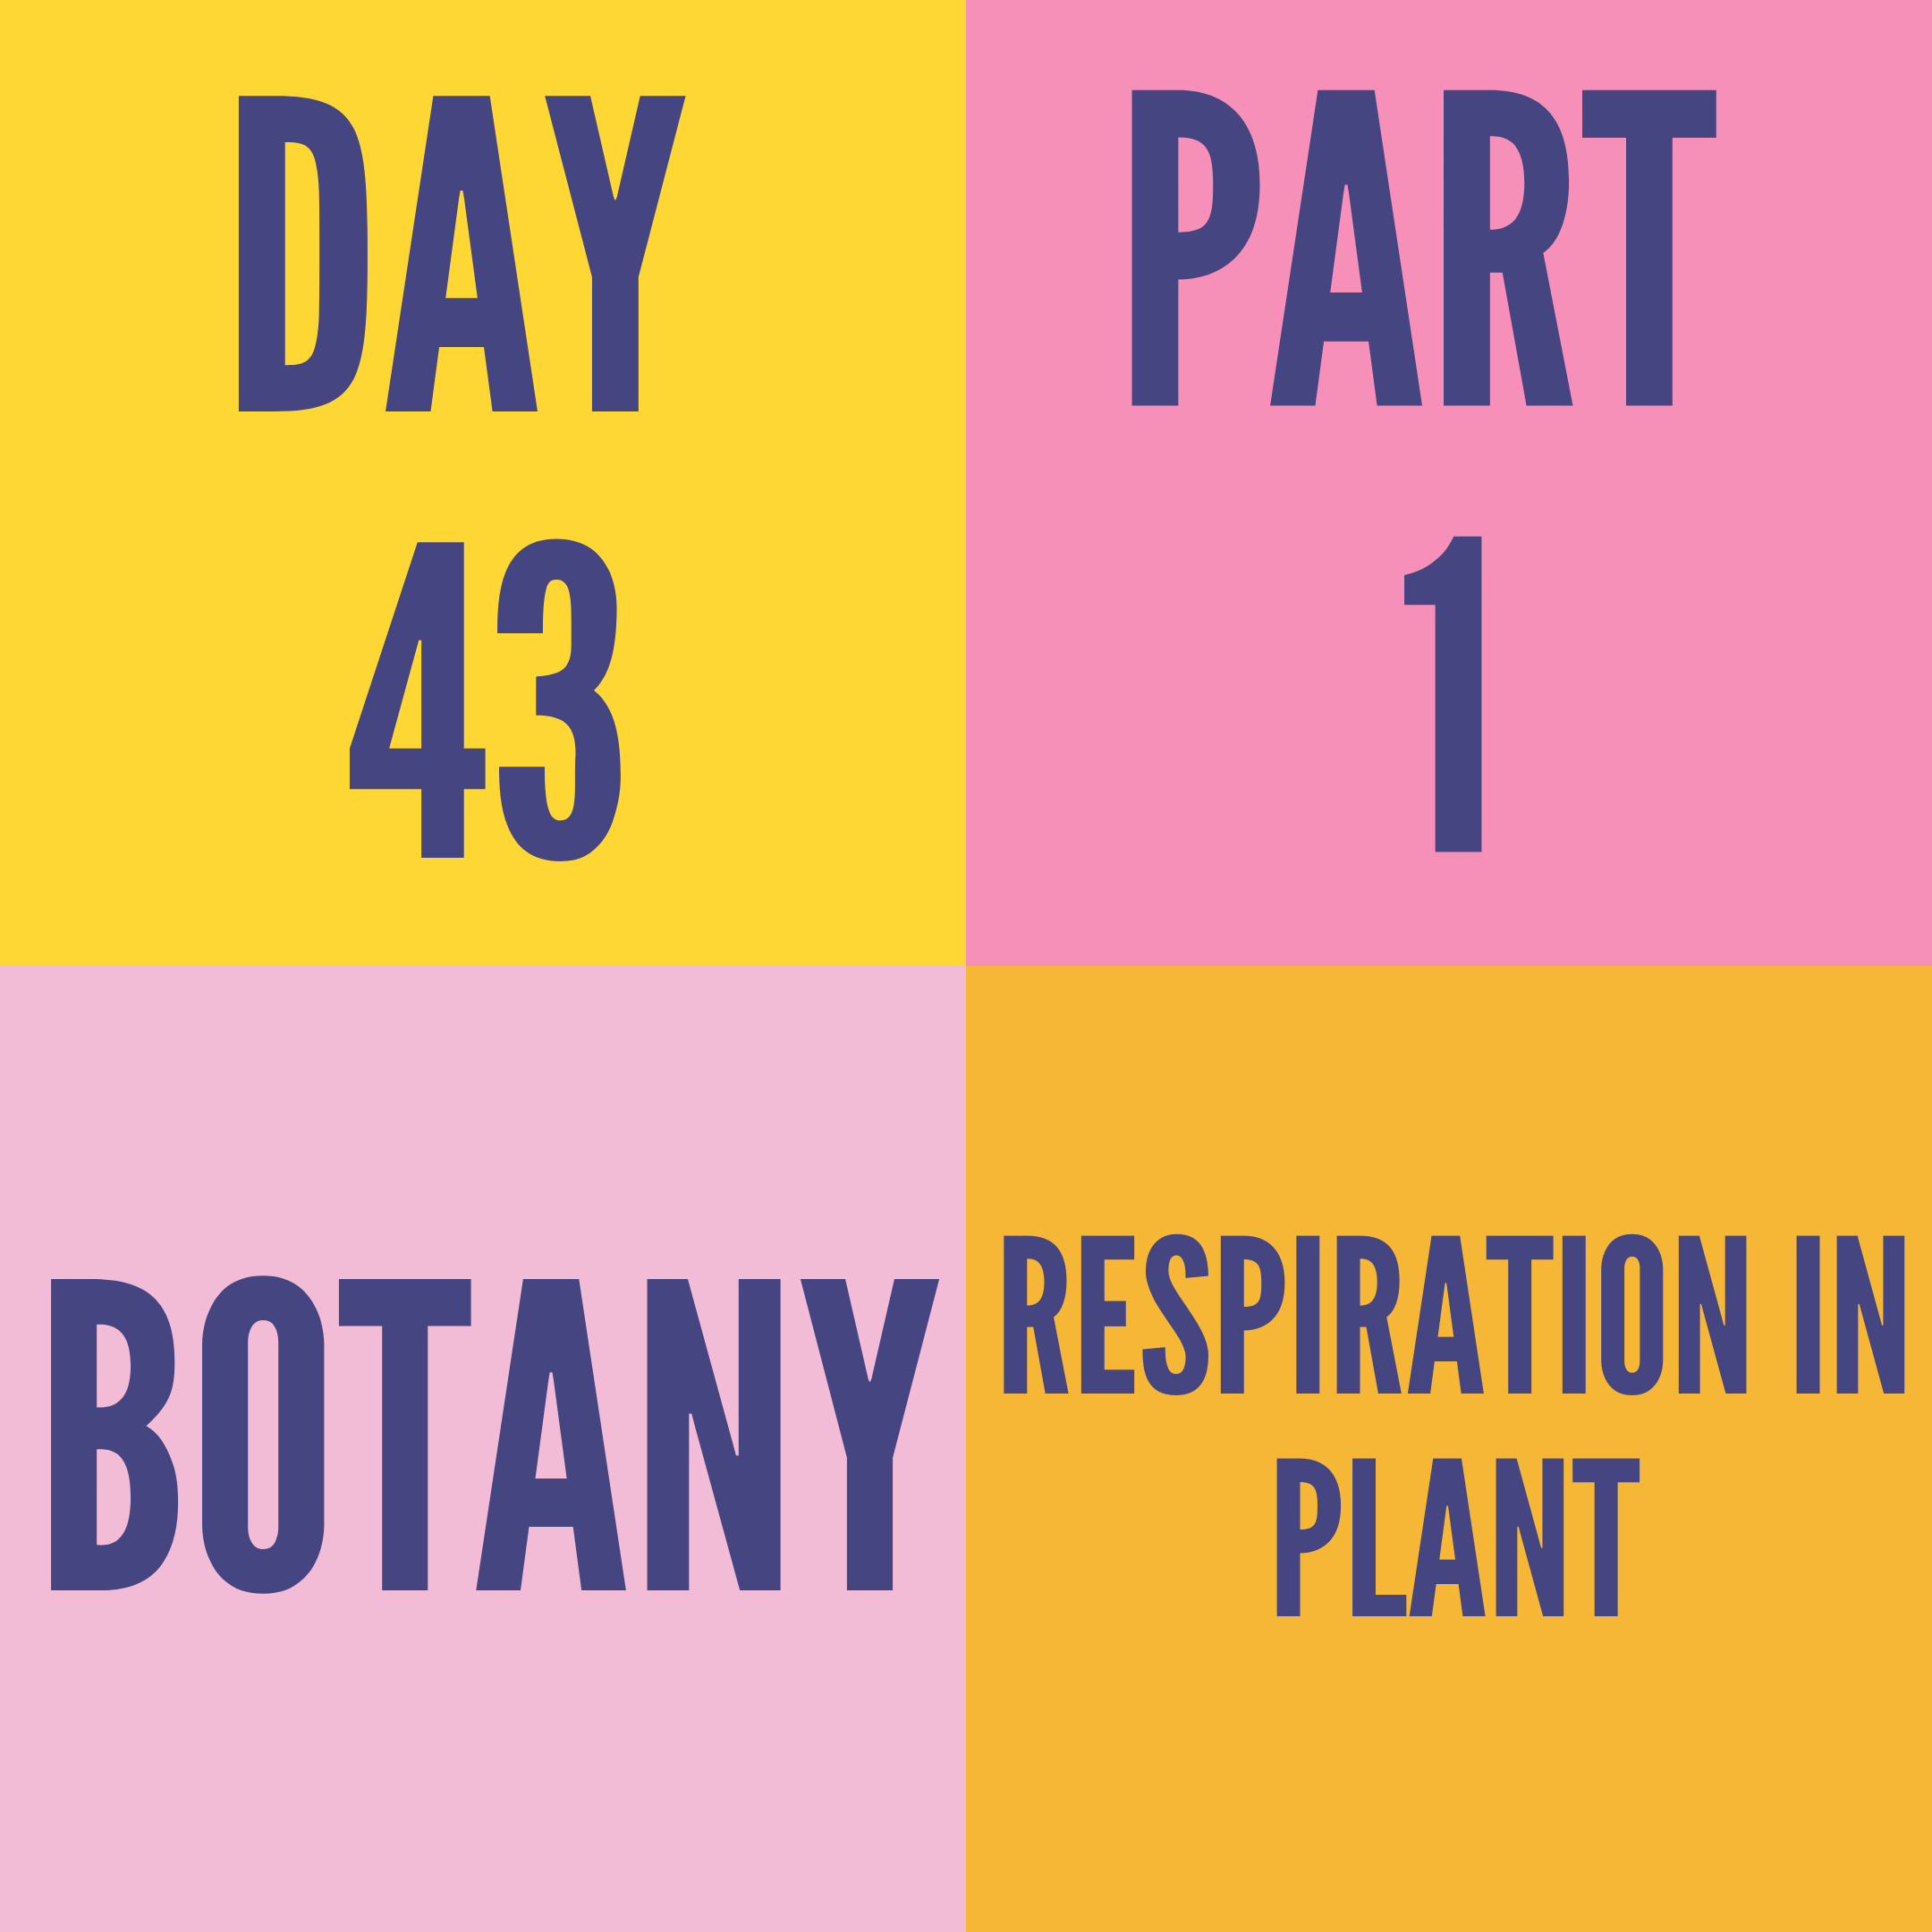 DAY-43 PART-1 RESPIRATION IN PLANT